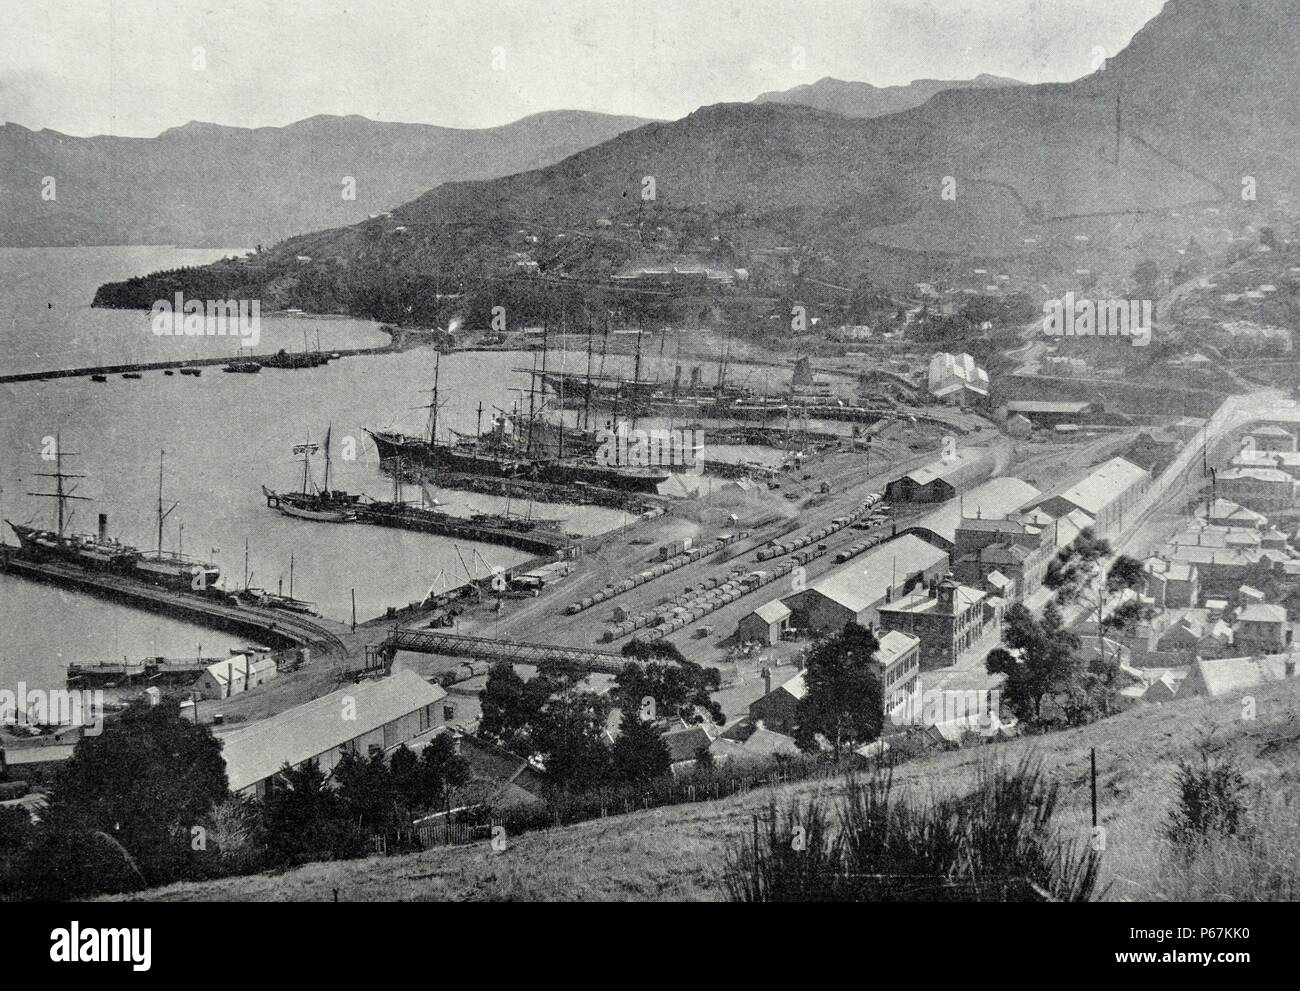 Photograph of Lyttelton Harbour, one of two major inlets in Banks Peninsula, on the coast of Canterbury, New Zealand. Dated 1900 - Stock Image